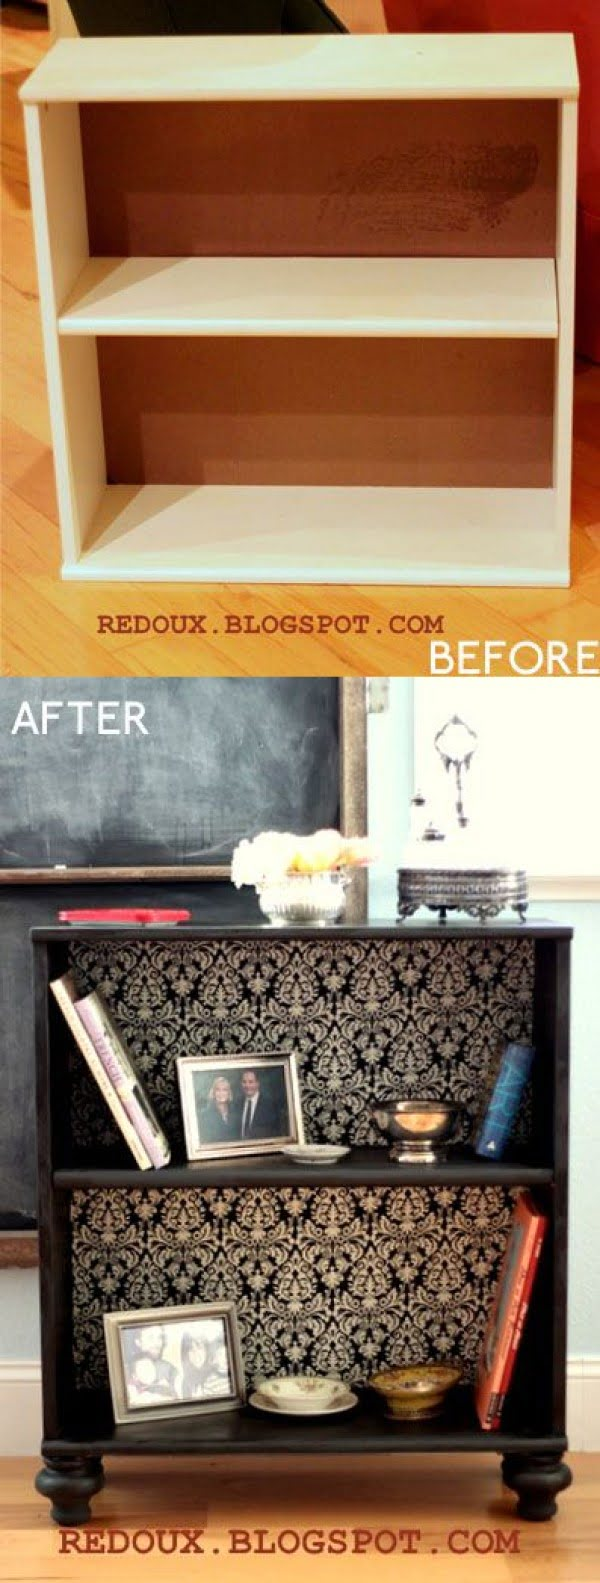 22 Easy DIY Bookshelf Ideas You Can Build at Home - Source: www.redouxinteriors.com